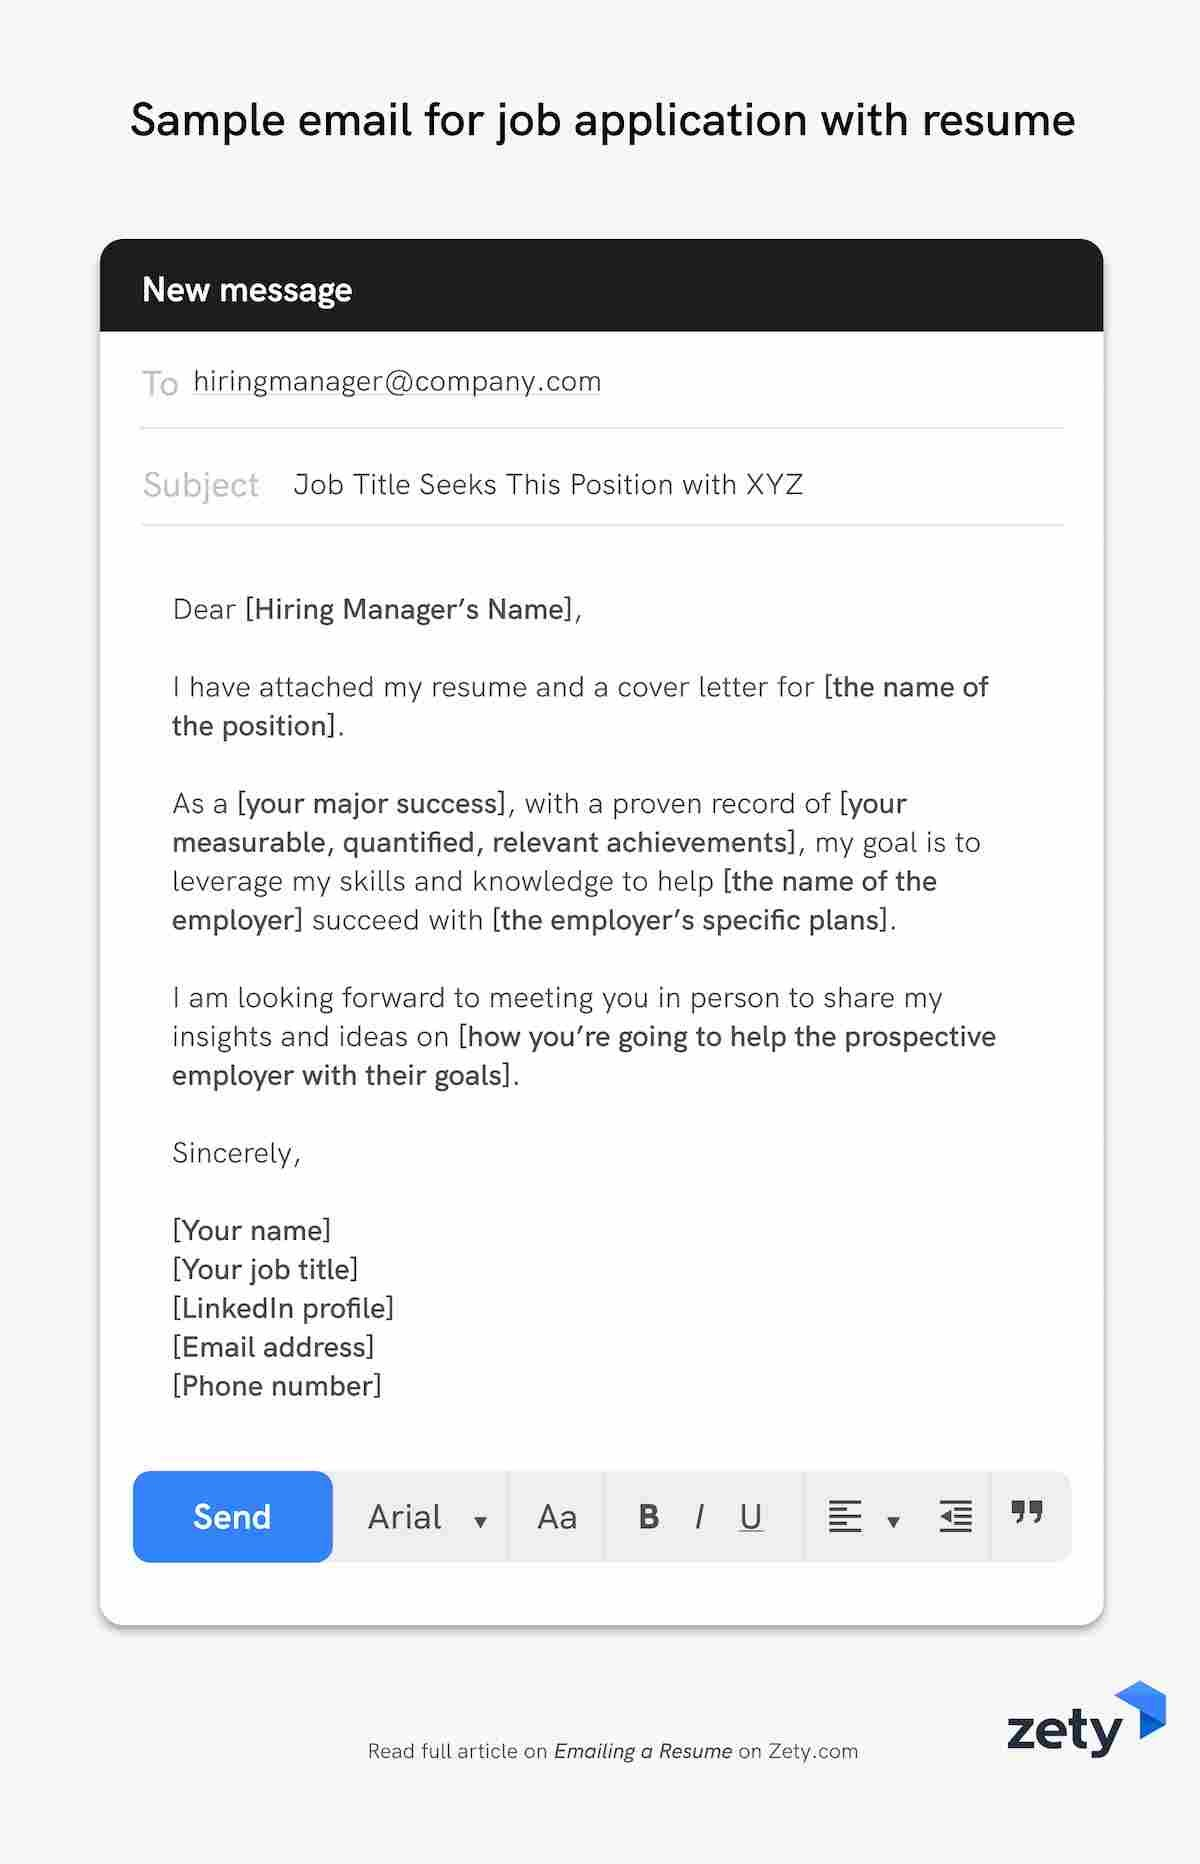 emailing resume job application email samples body of the letter for sending sample with Resume Body Of The Letter For Sending Resume